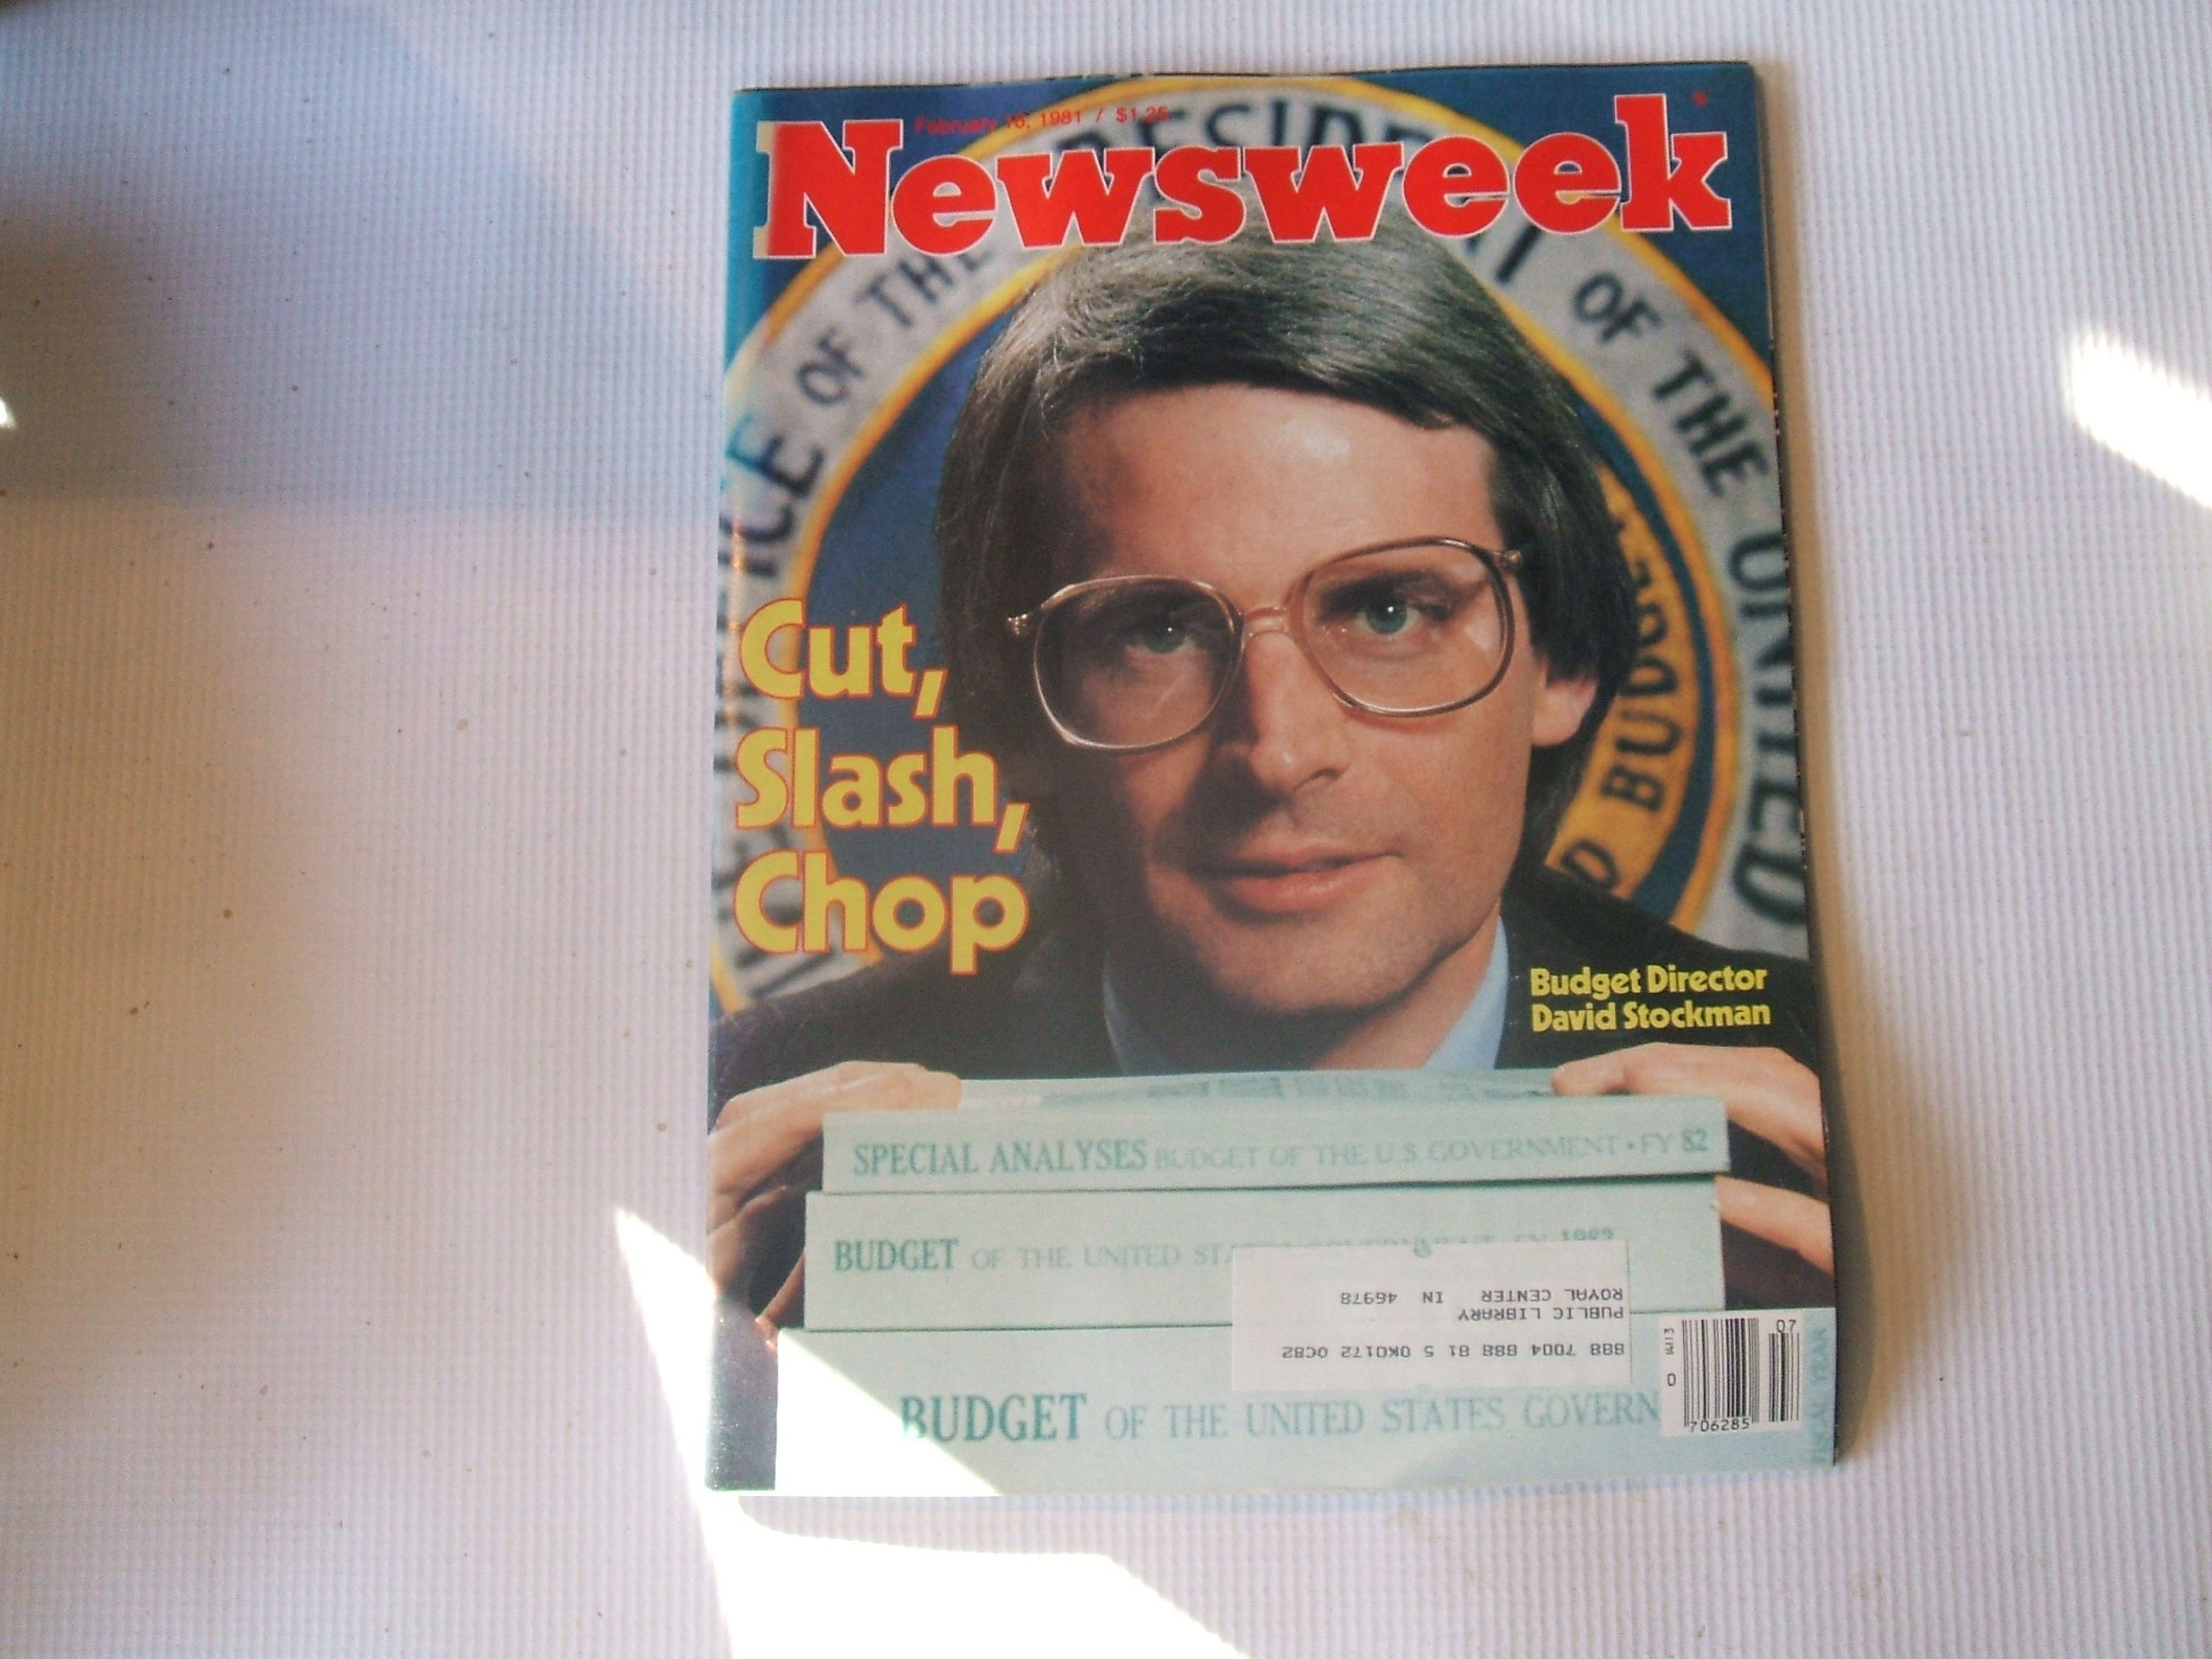 Newsweek February 16, 1981 (CUT, SLASH, CHOP - BUDGET